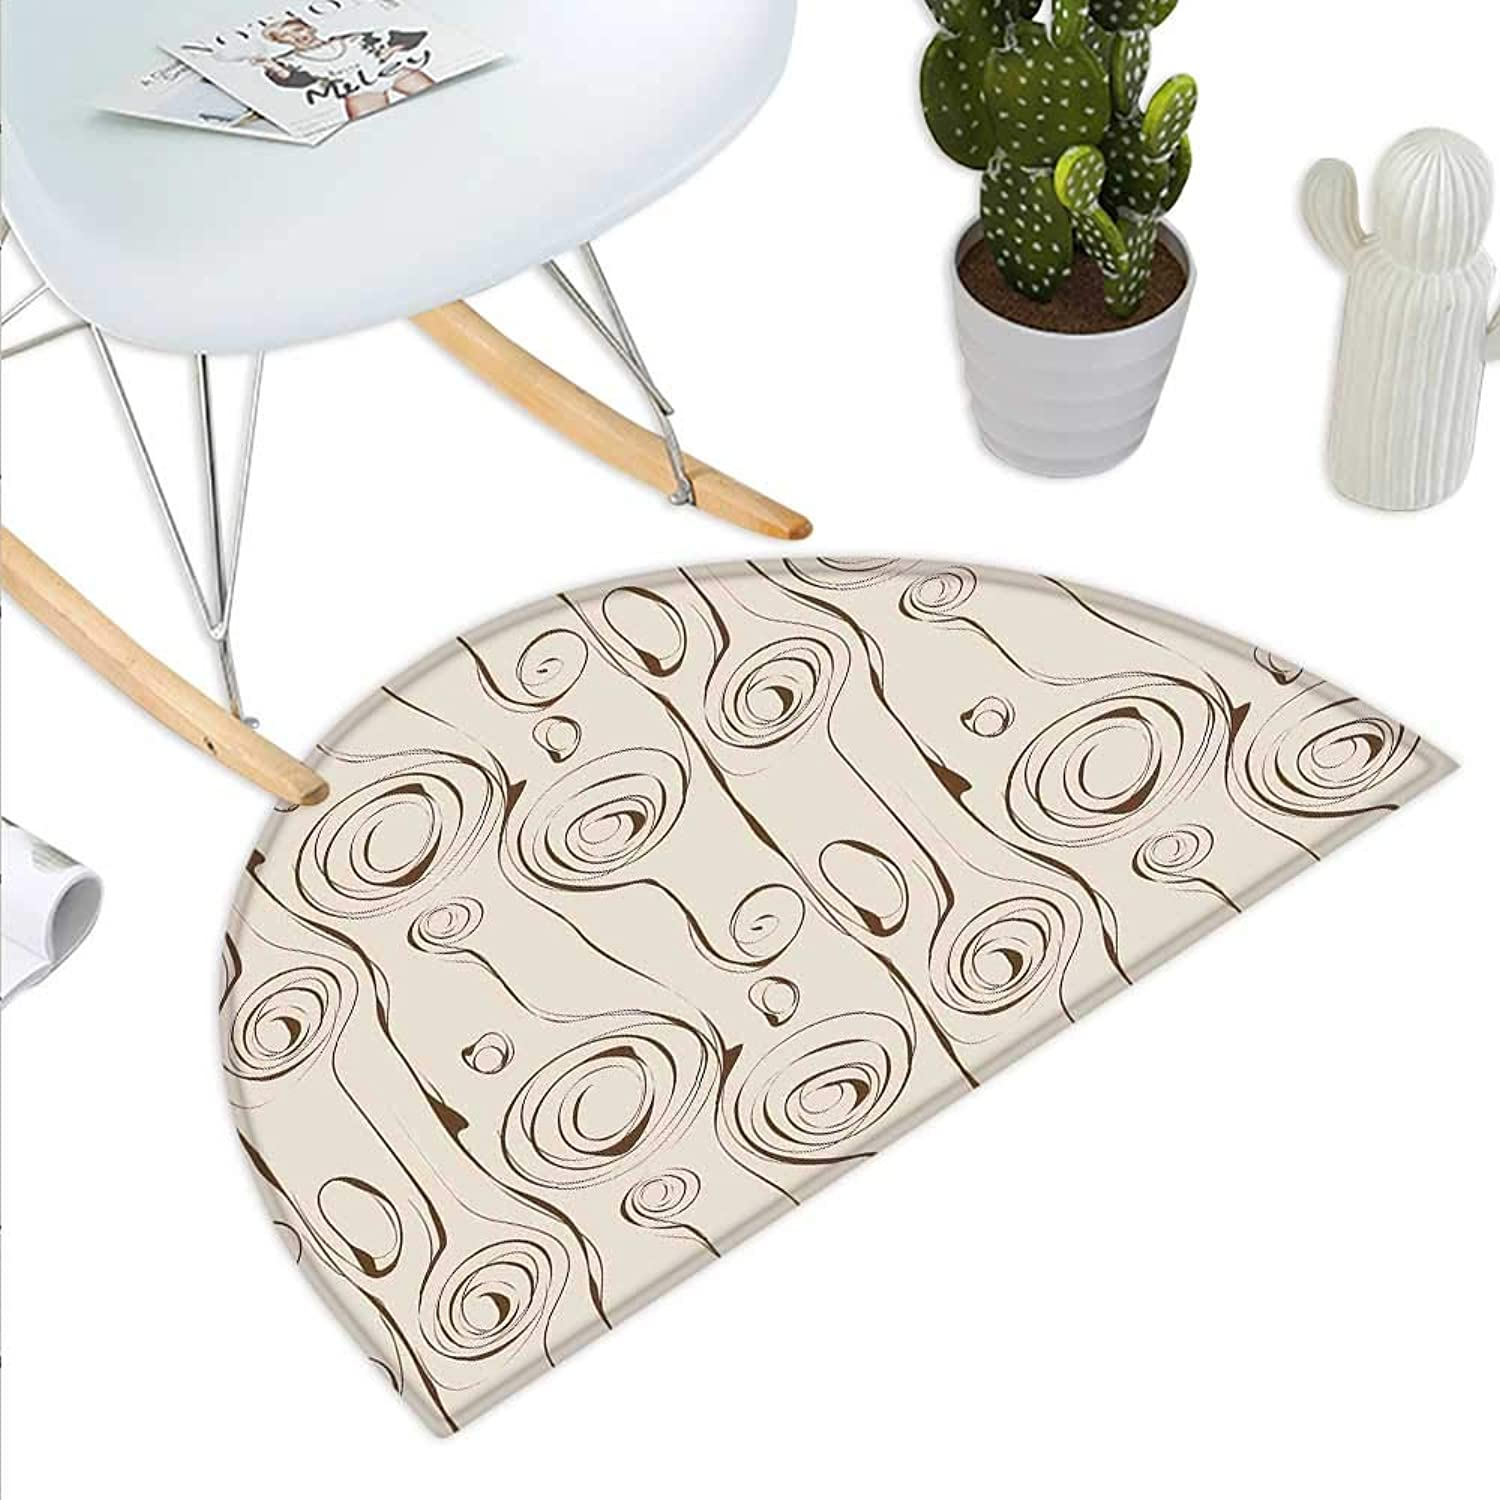 Contemporary Semicircle Doormat Scribble Spirals greenical Swirl Lines and Circles Bizarre Modern Pattern Halfmoon doormats H 47.2  xD 70.8  Beige and Brown